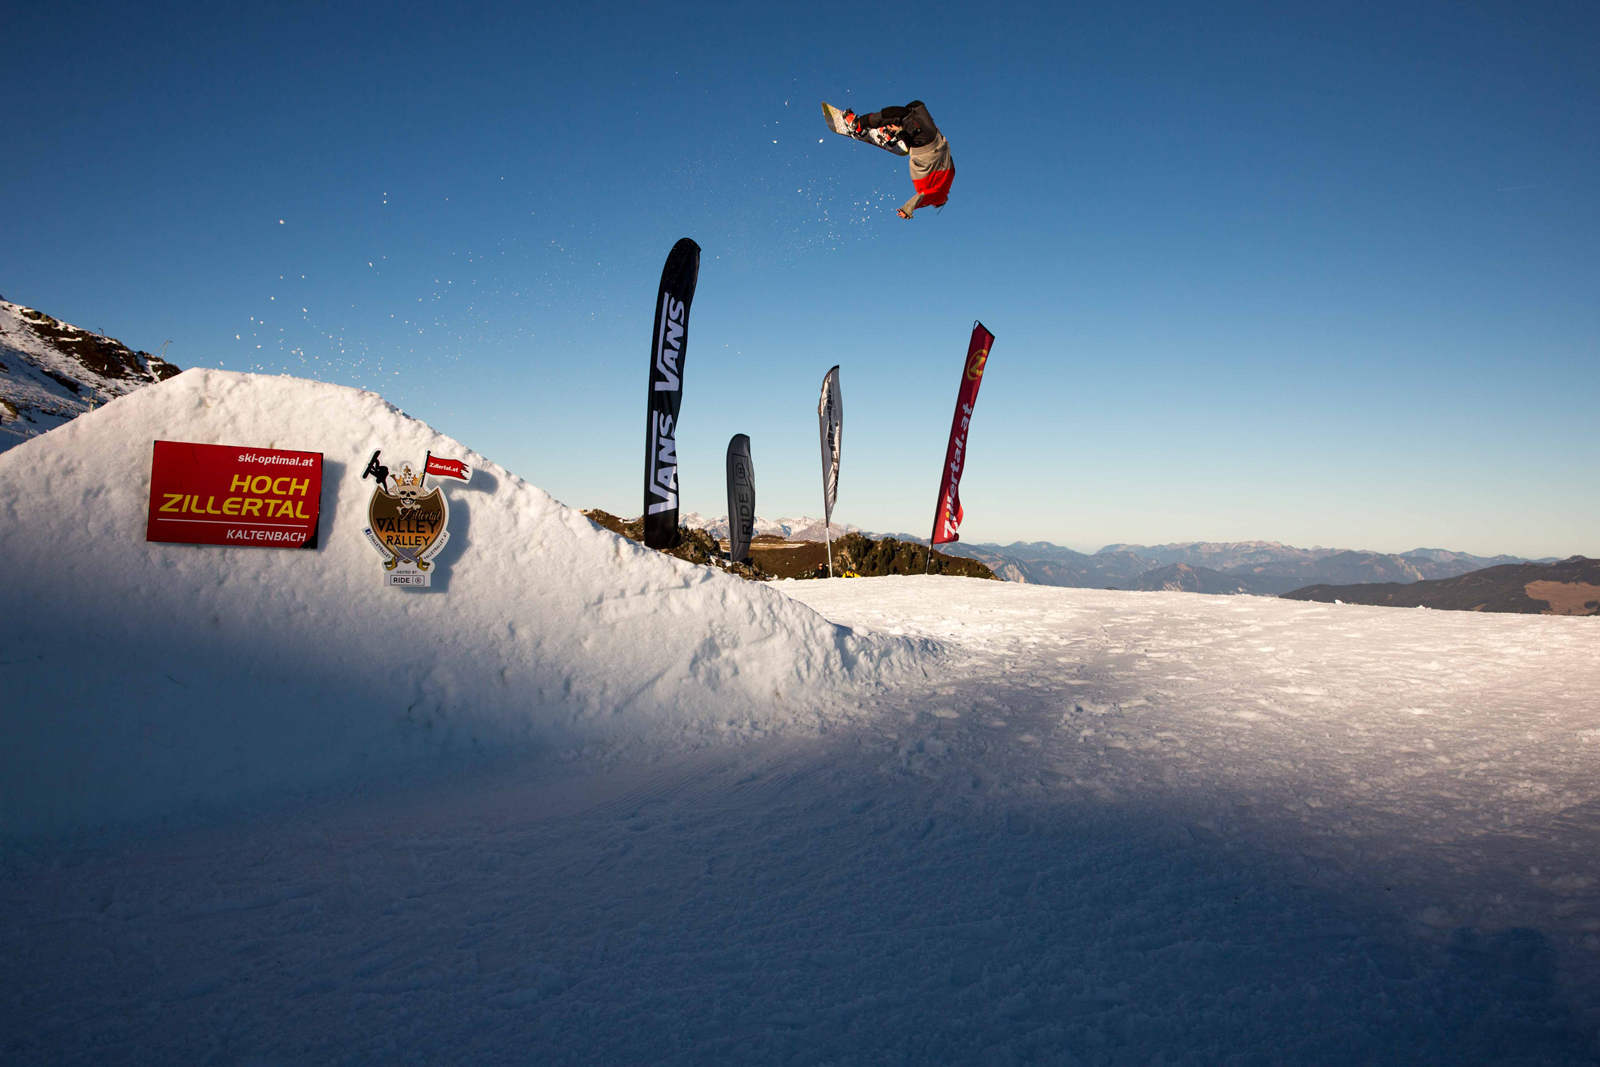 Zillertal VÄLLEY RÄLLEY hosted by Ride Snowboards 2015 / 2016 - Foto: Matt McHattie